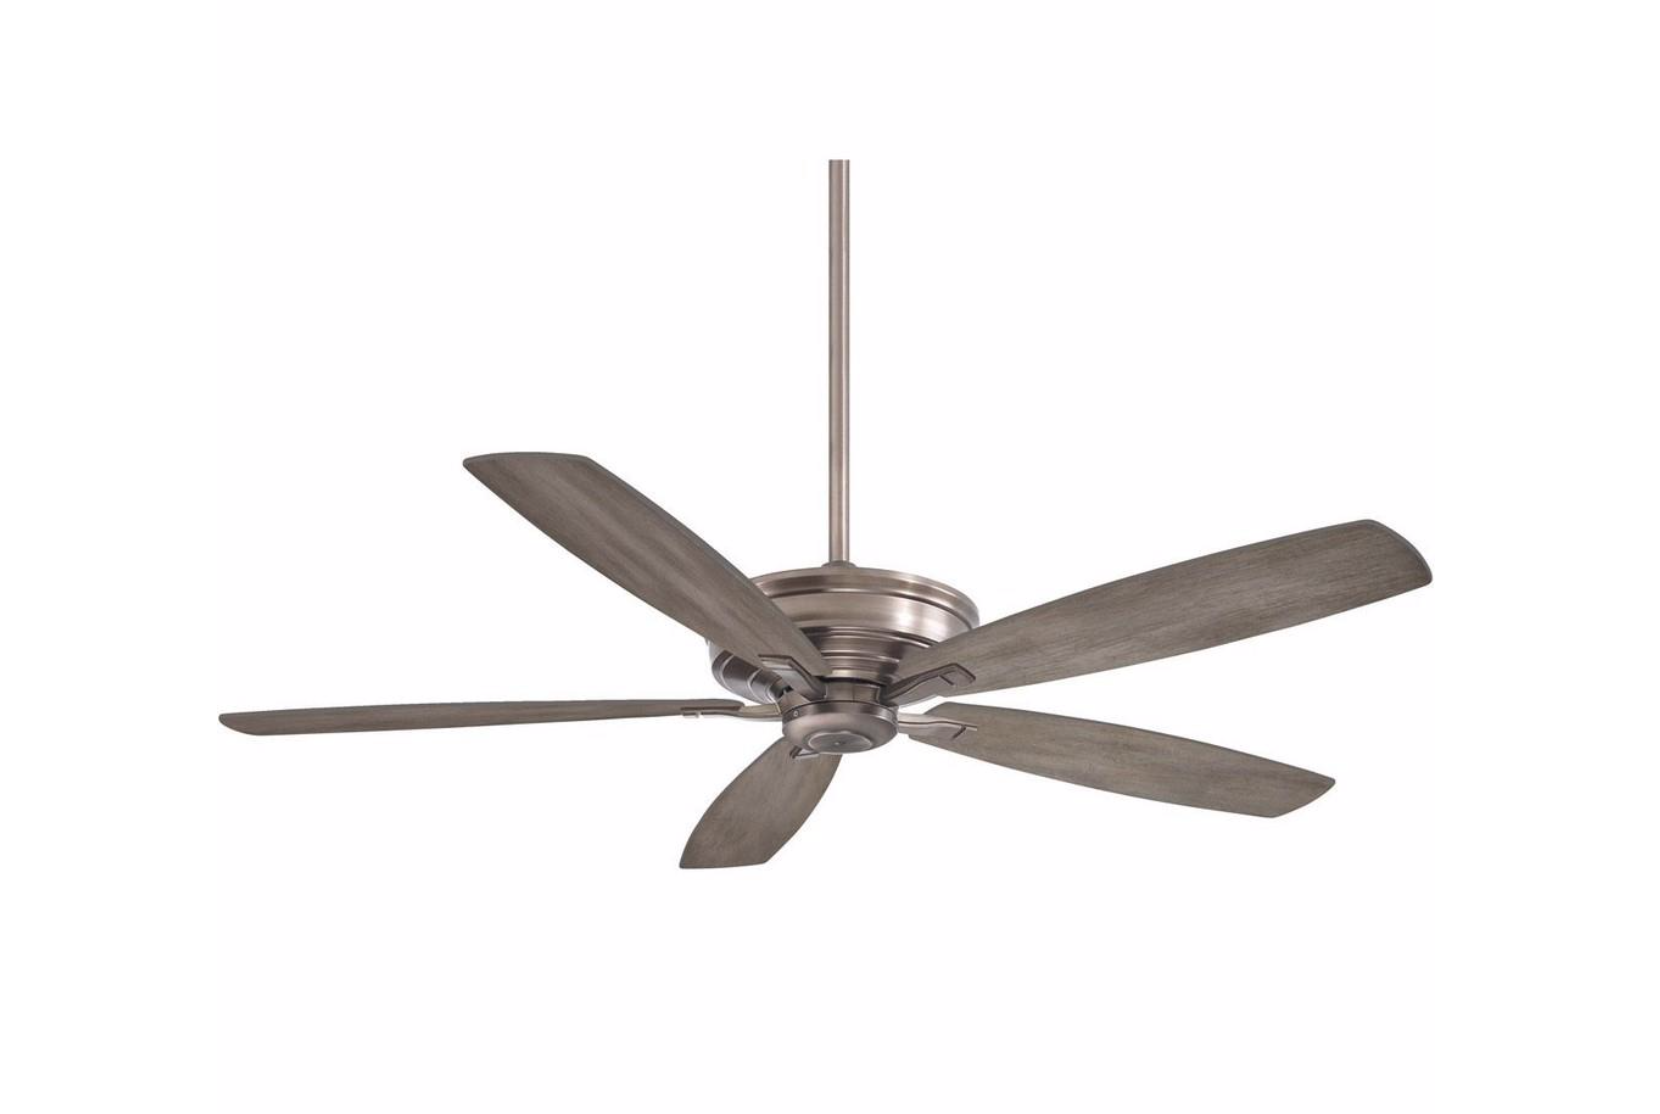 Hunter Antero 54 In Led Indoor Brushed Nickel Ceiling Fan With Light 59183 The Home Depot Ceiling Fan With Light Fan Light Brushed Nickel Ceiling Fan